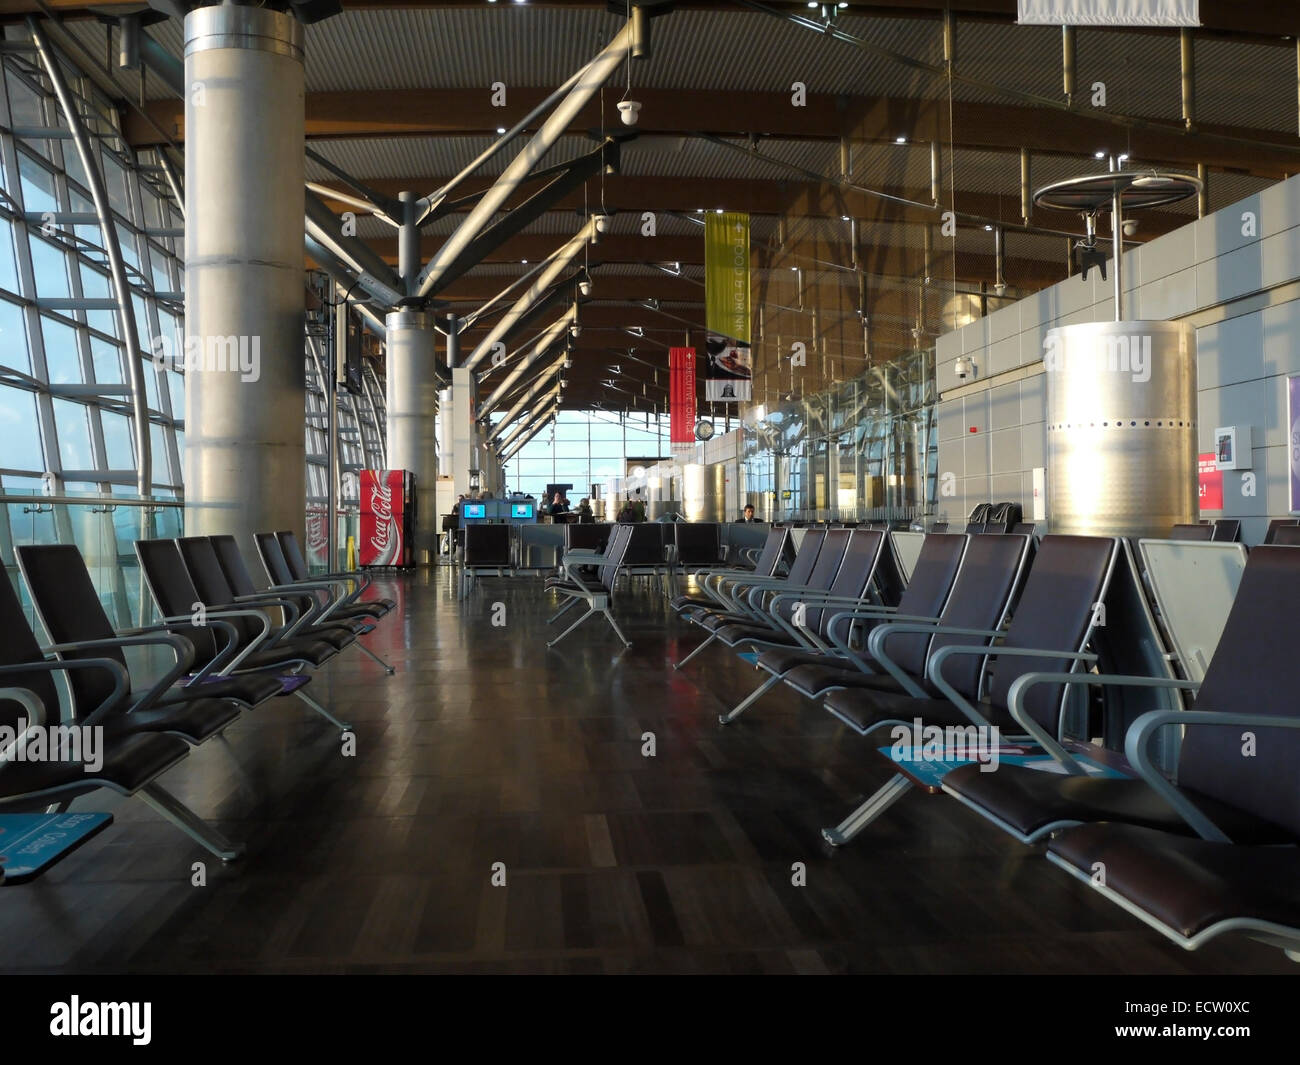 Inside the departure lounge at Cork Airport, Cork, Ireland - Stock Image